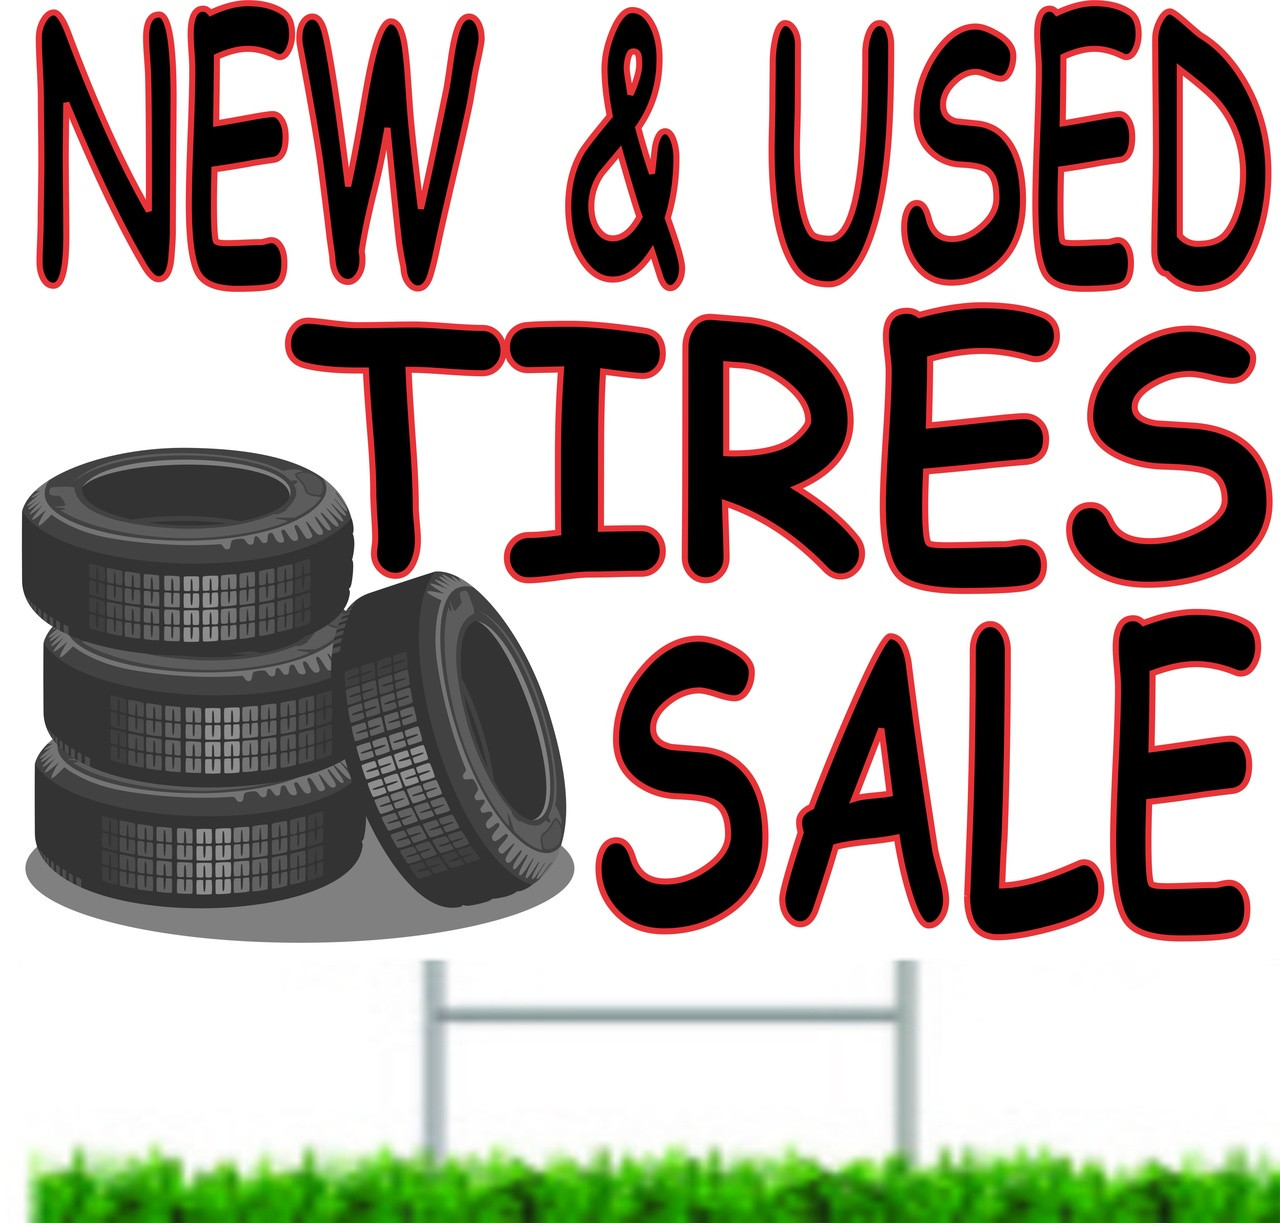 New & Used Tires Sale Curb Sign.